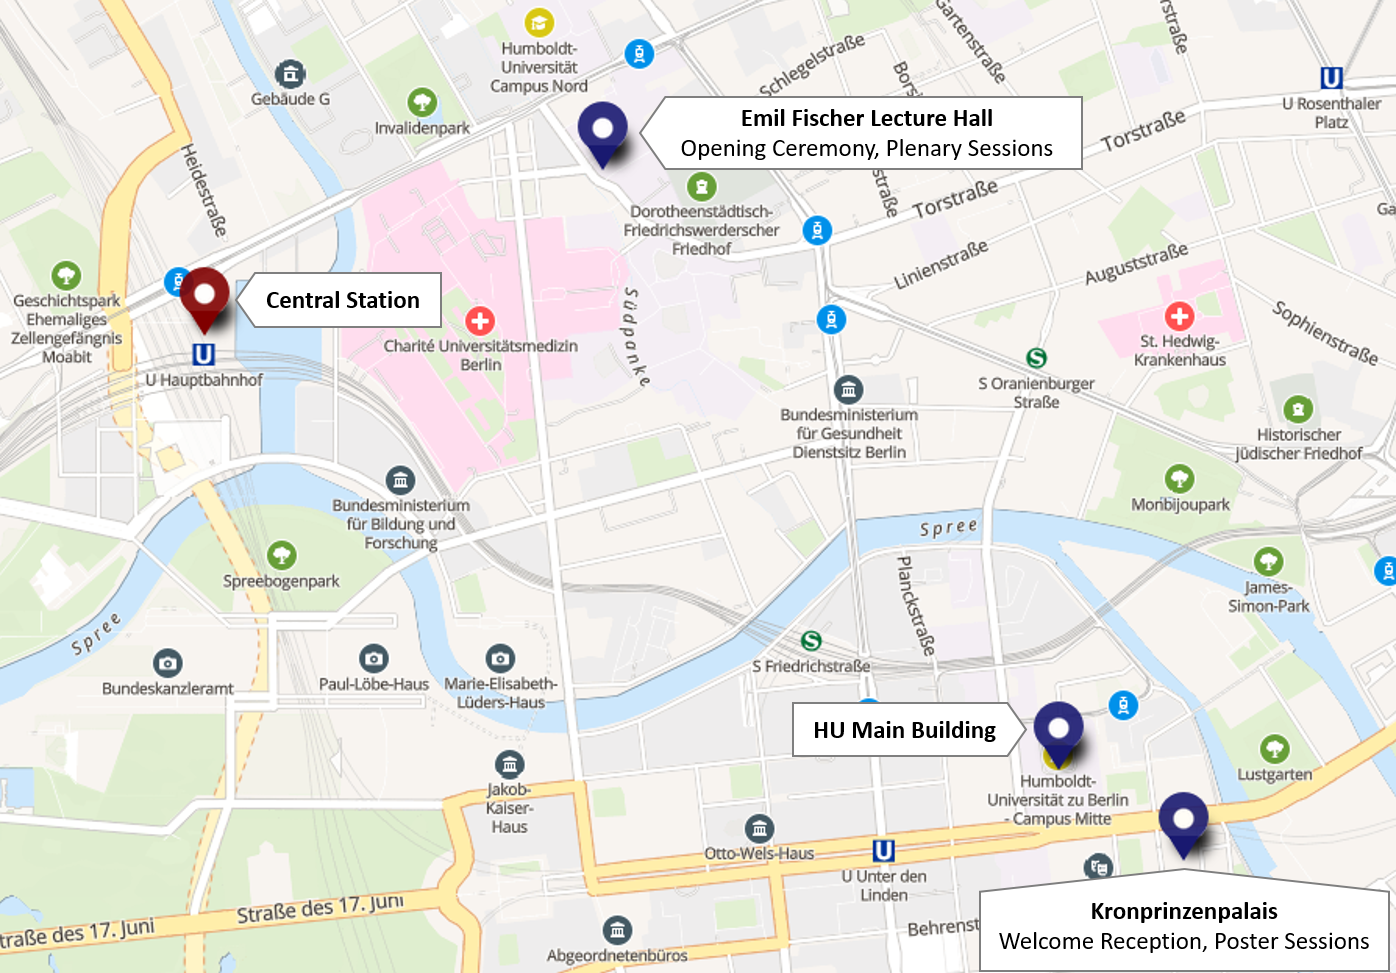 Map of conference locations and central station; click to enlarge